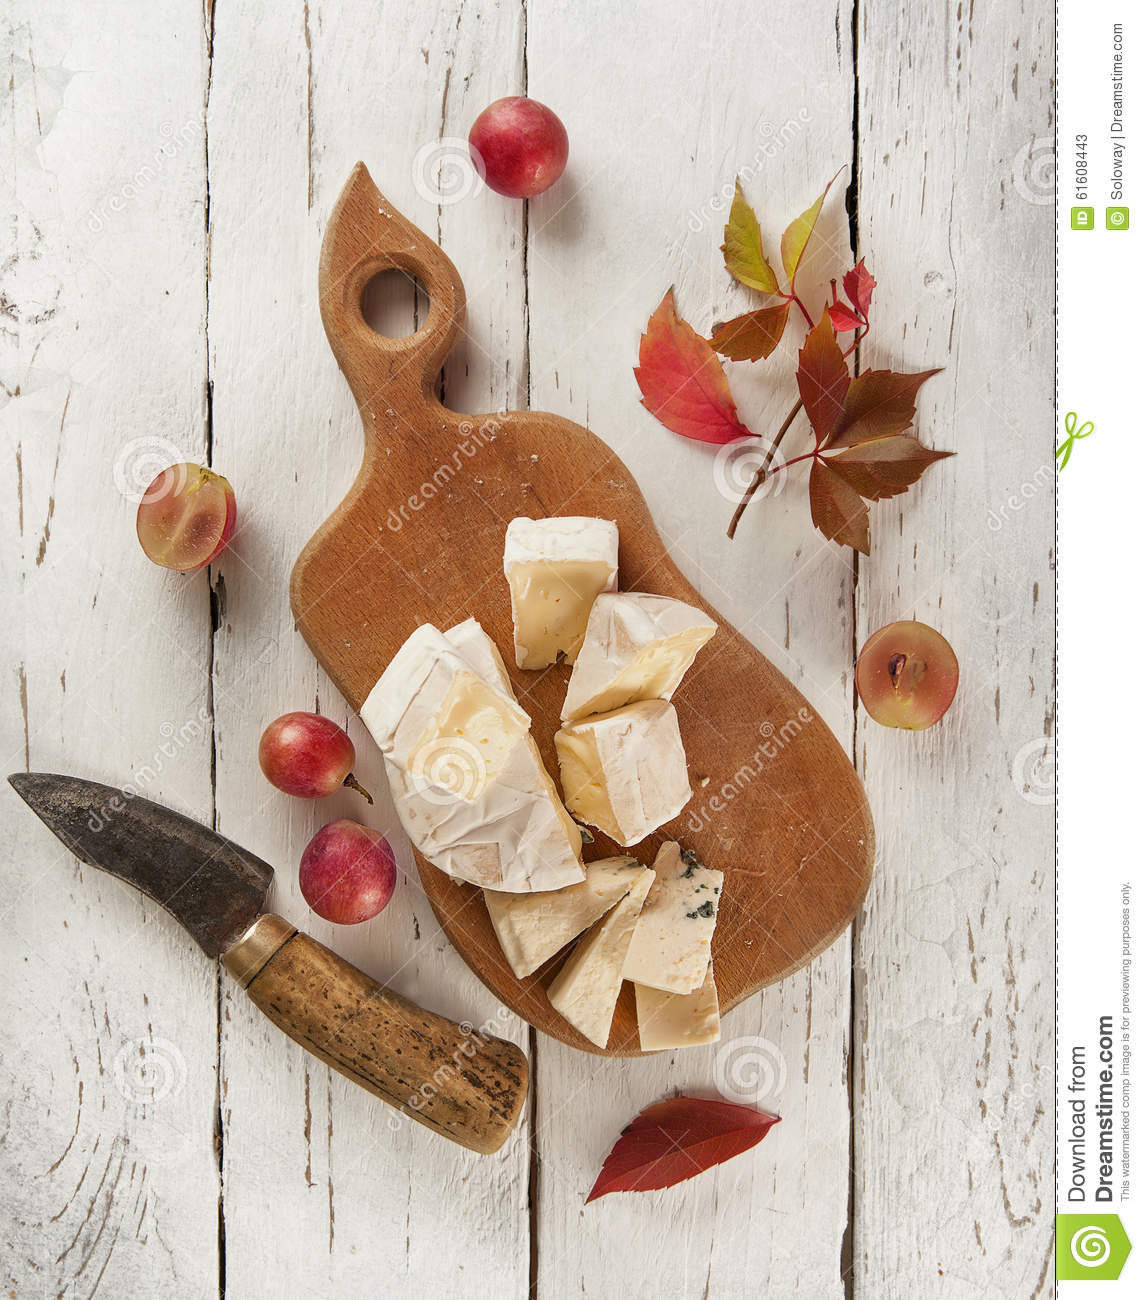 Different Types Of Cutting Boards Cutting Board With Different Kinds Of Cheeses Stock Photo